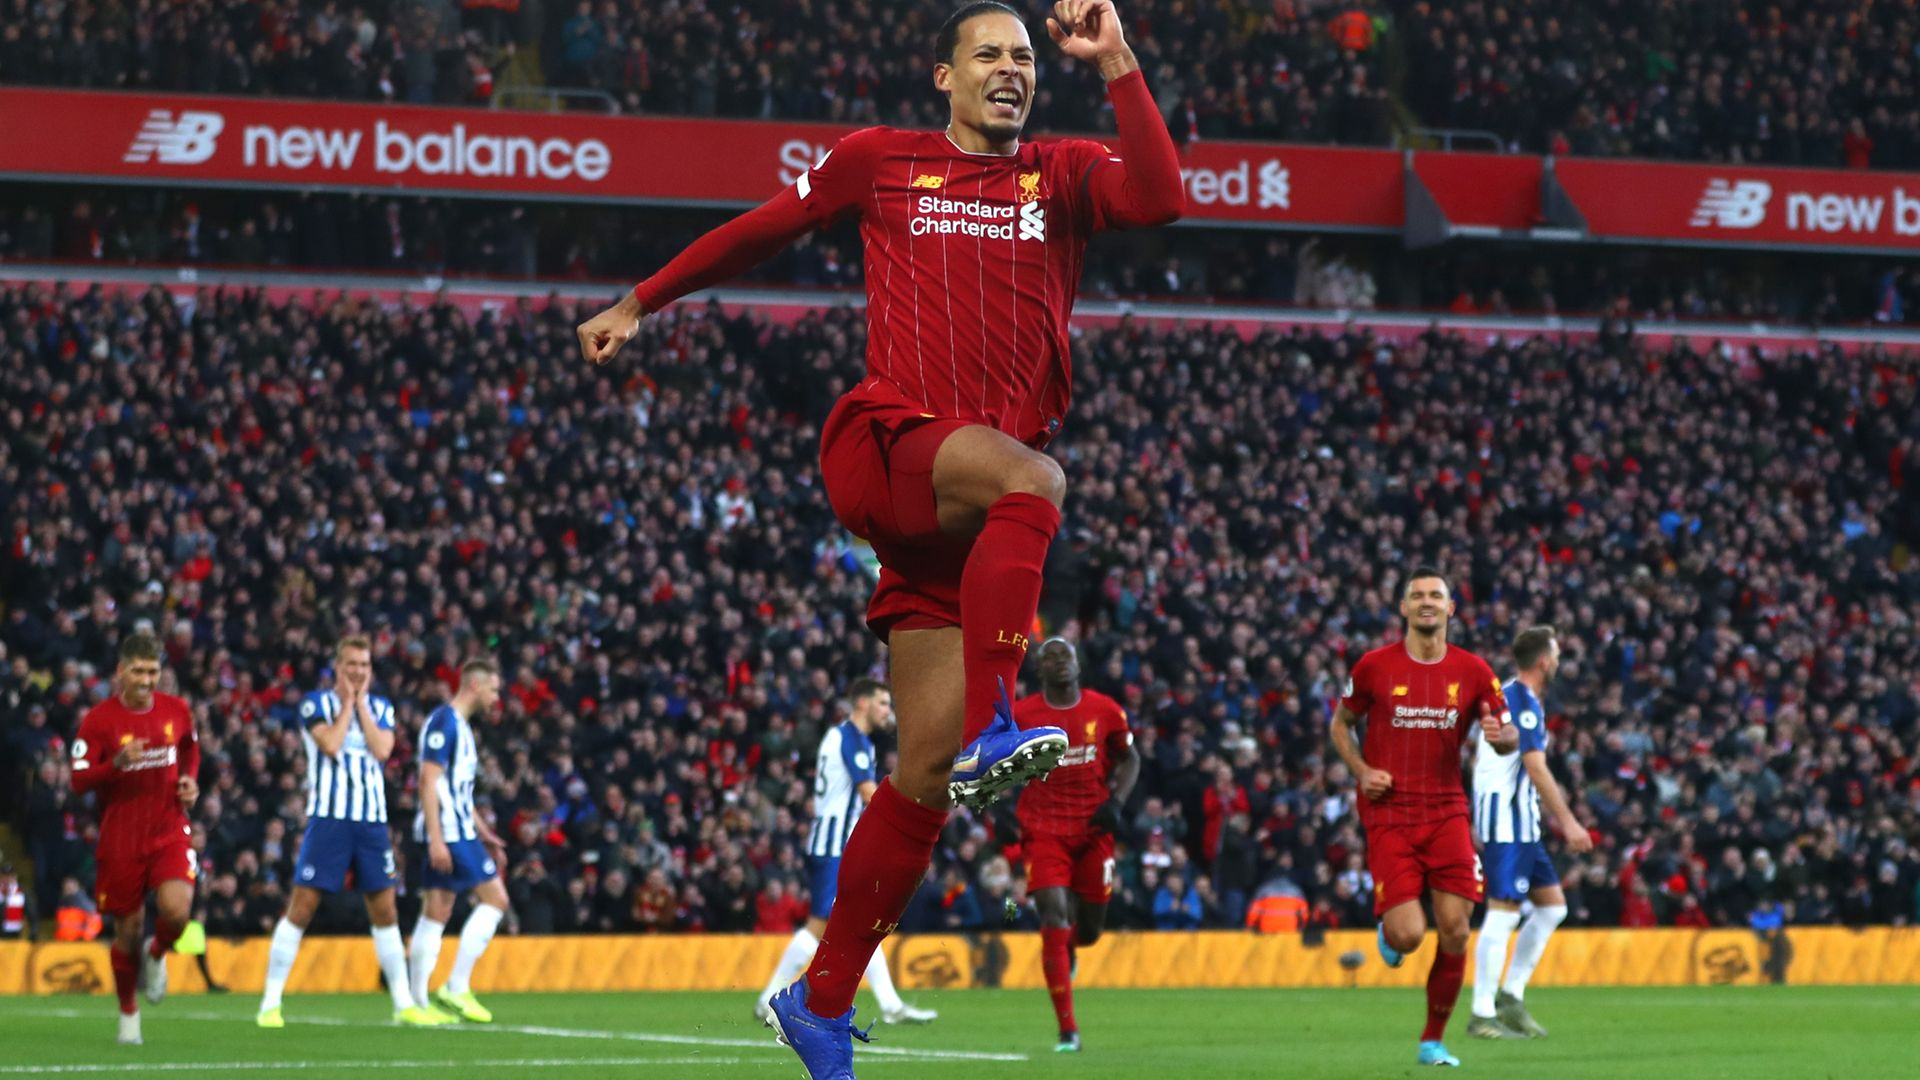 Liverpool's Virgil Van Dijk celebrating a goal against Brighton and Hove Albion. Would he have been able to play in England under rules about to be introduced? - Credit: Getty Images